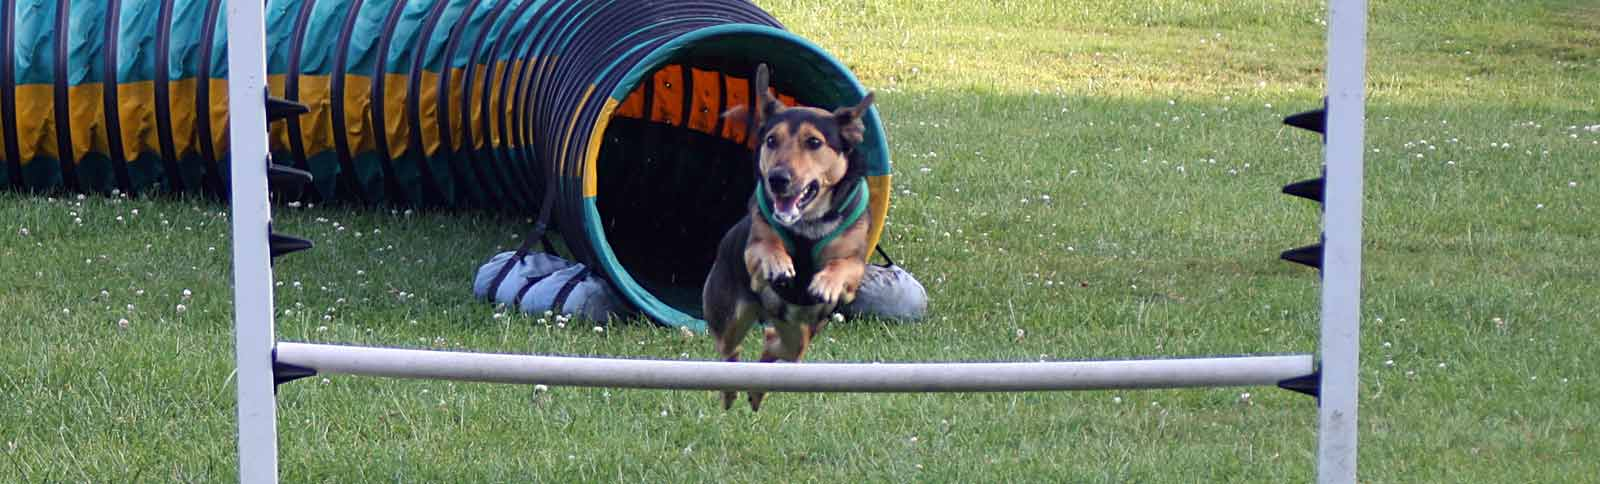 Dog on agility training course dog leaping first jump after tunnel.